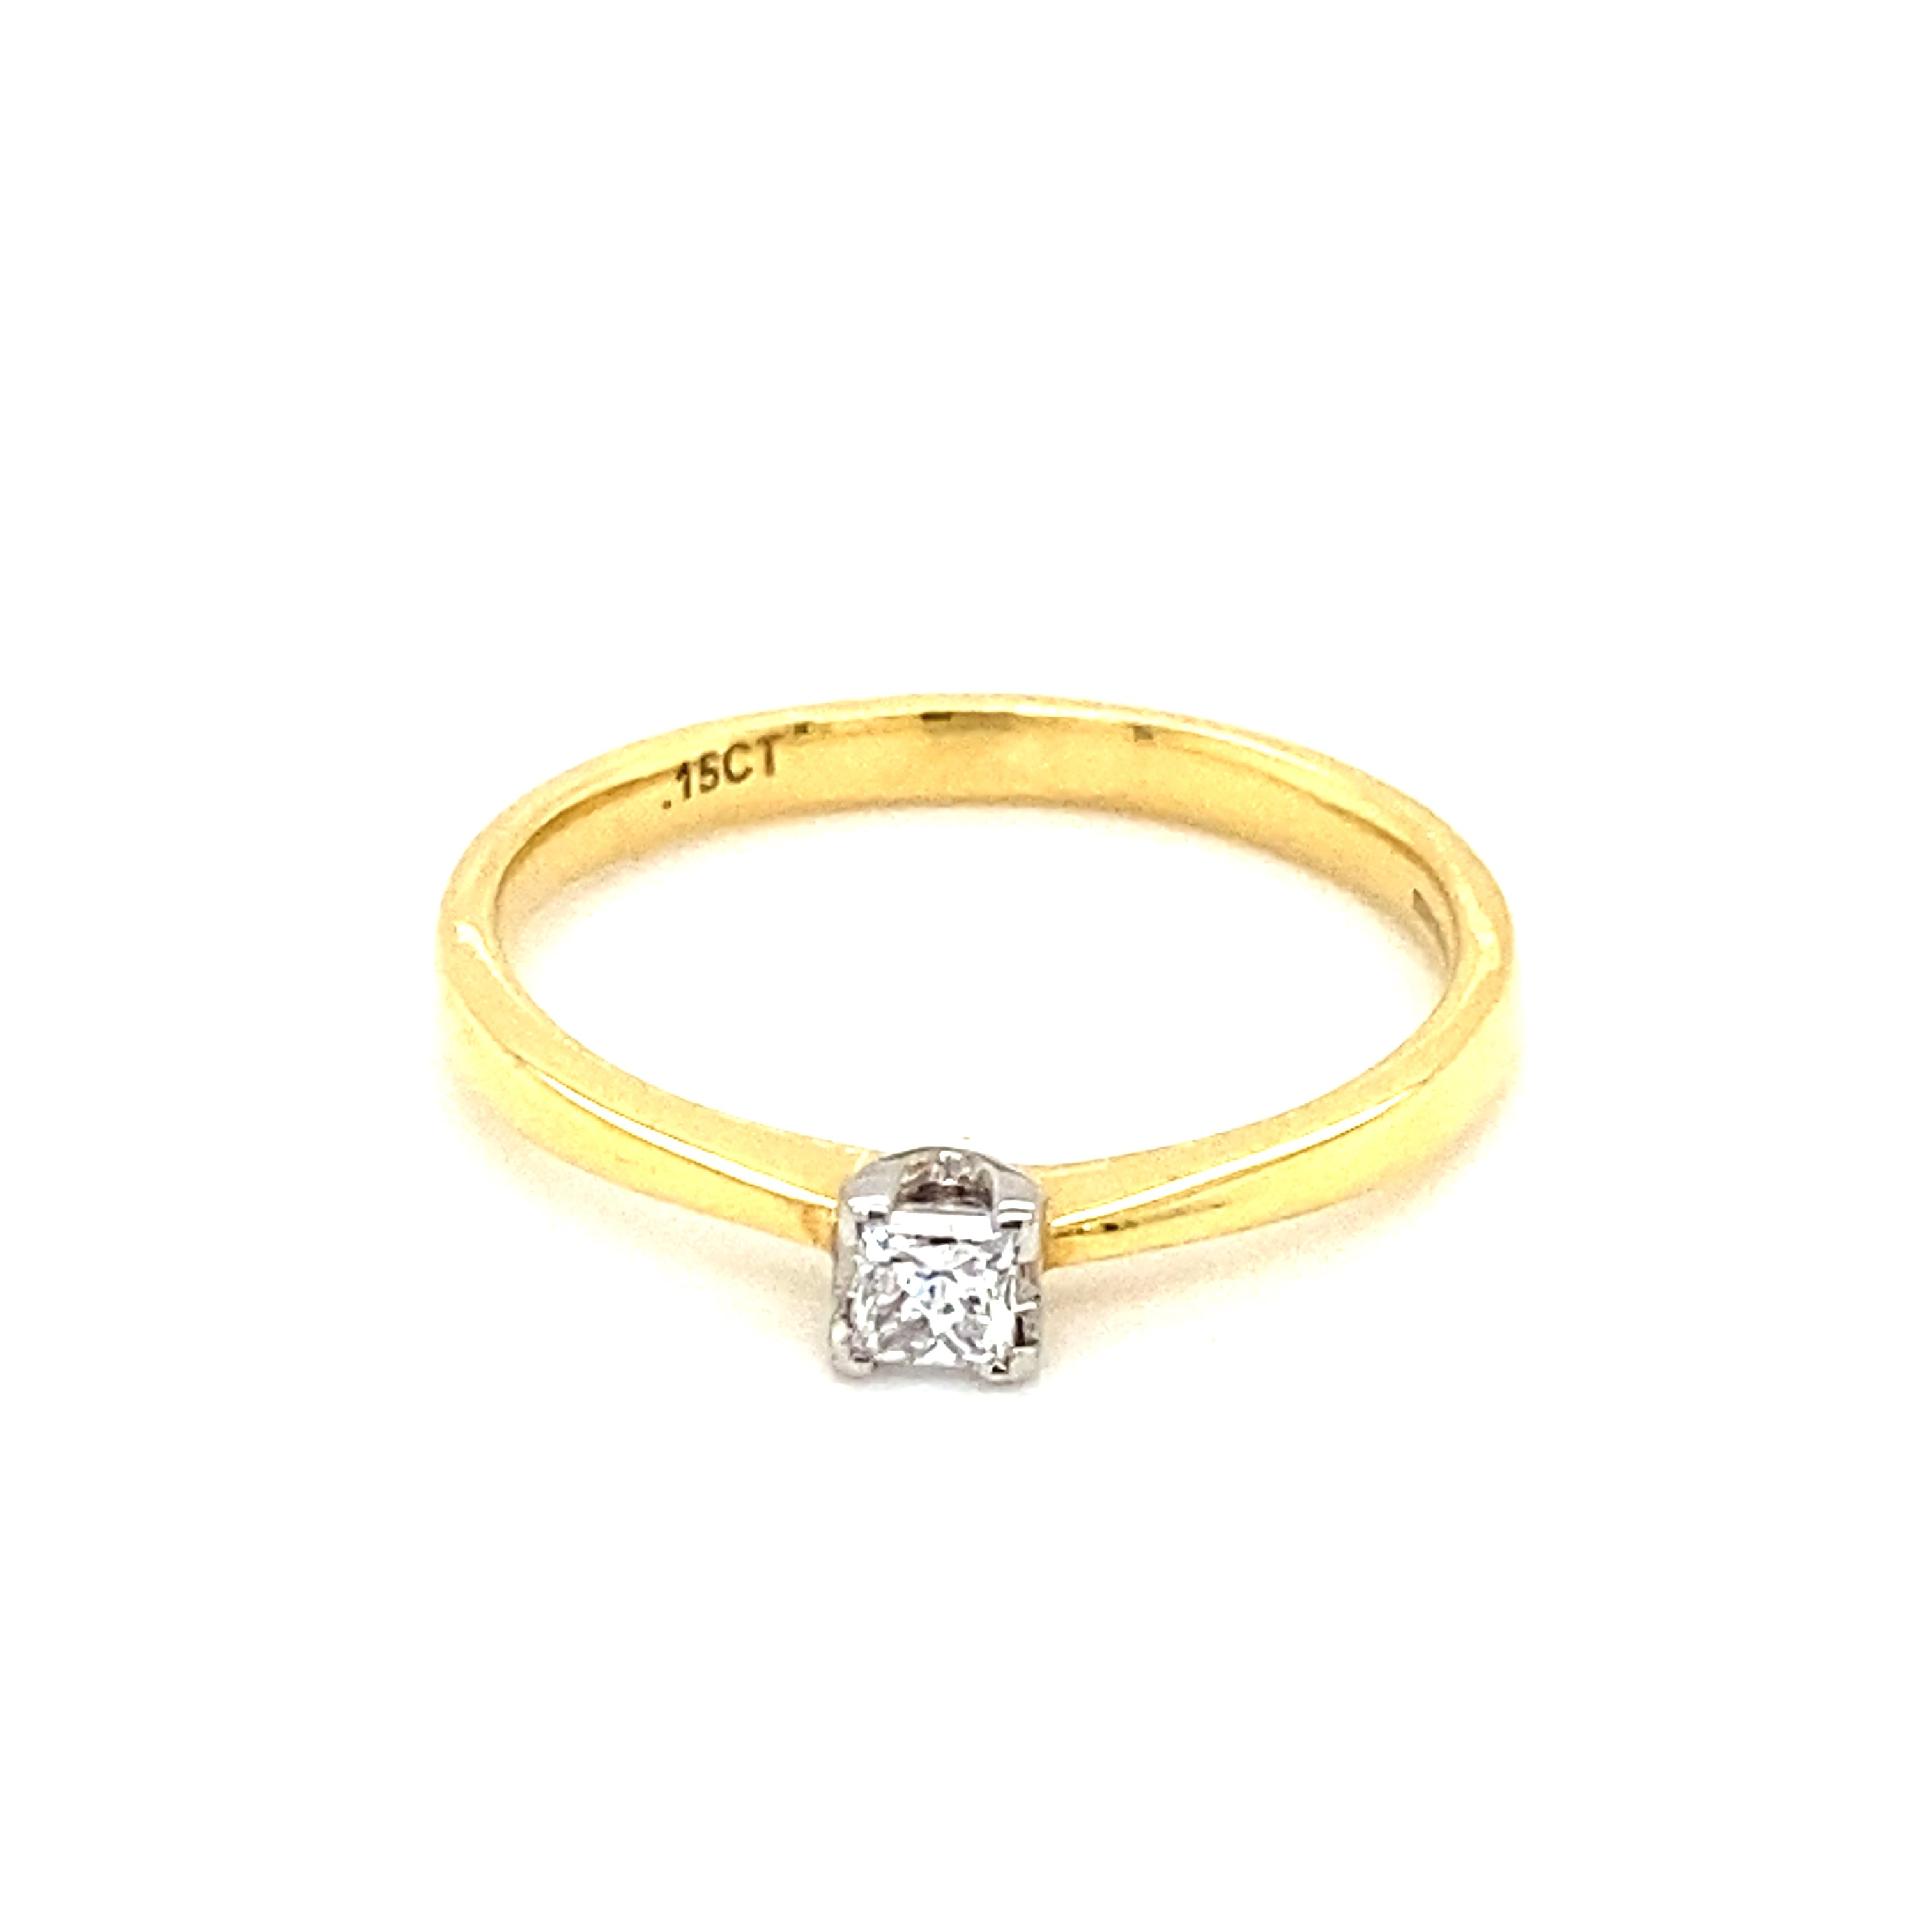 18ct Yellow Gold 0.15ct Princess Cut Solitaire Ring